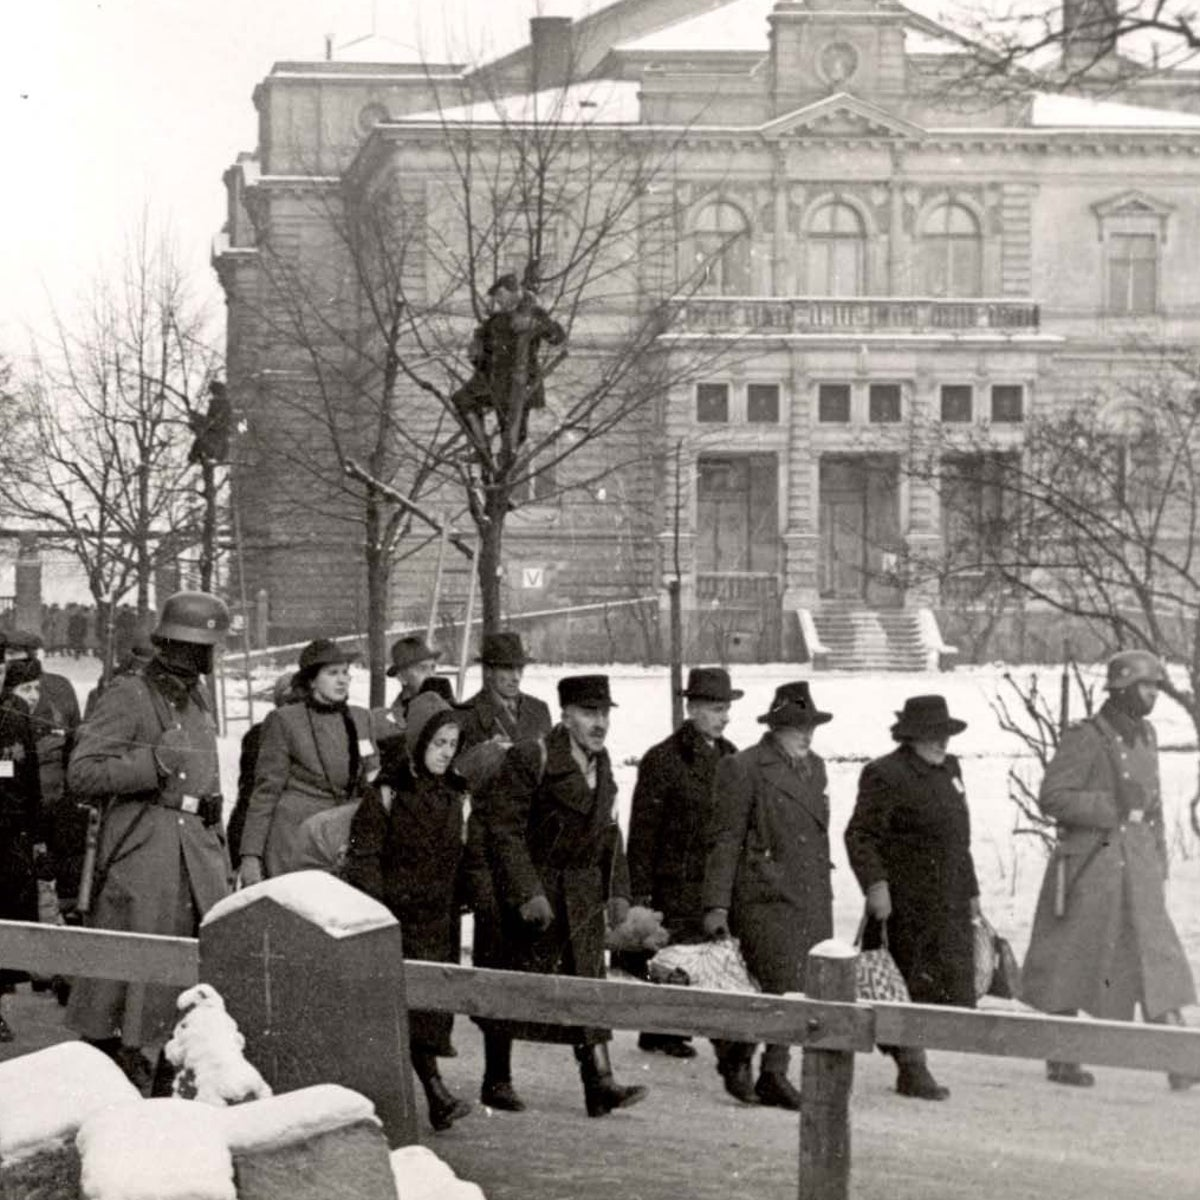 Jews being marched to a train in Pilsen, Czechoslovakia, 1942.